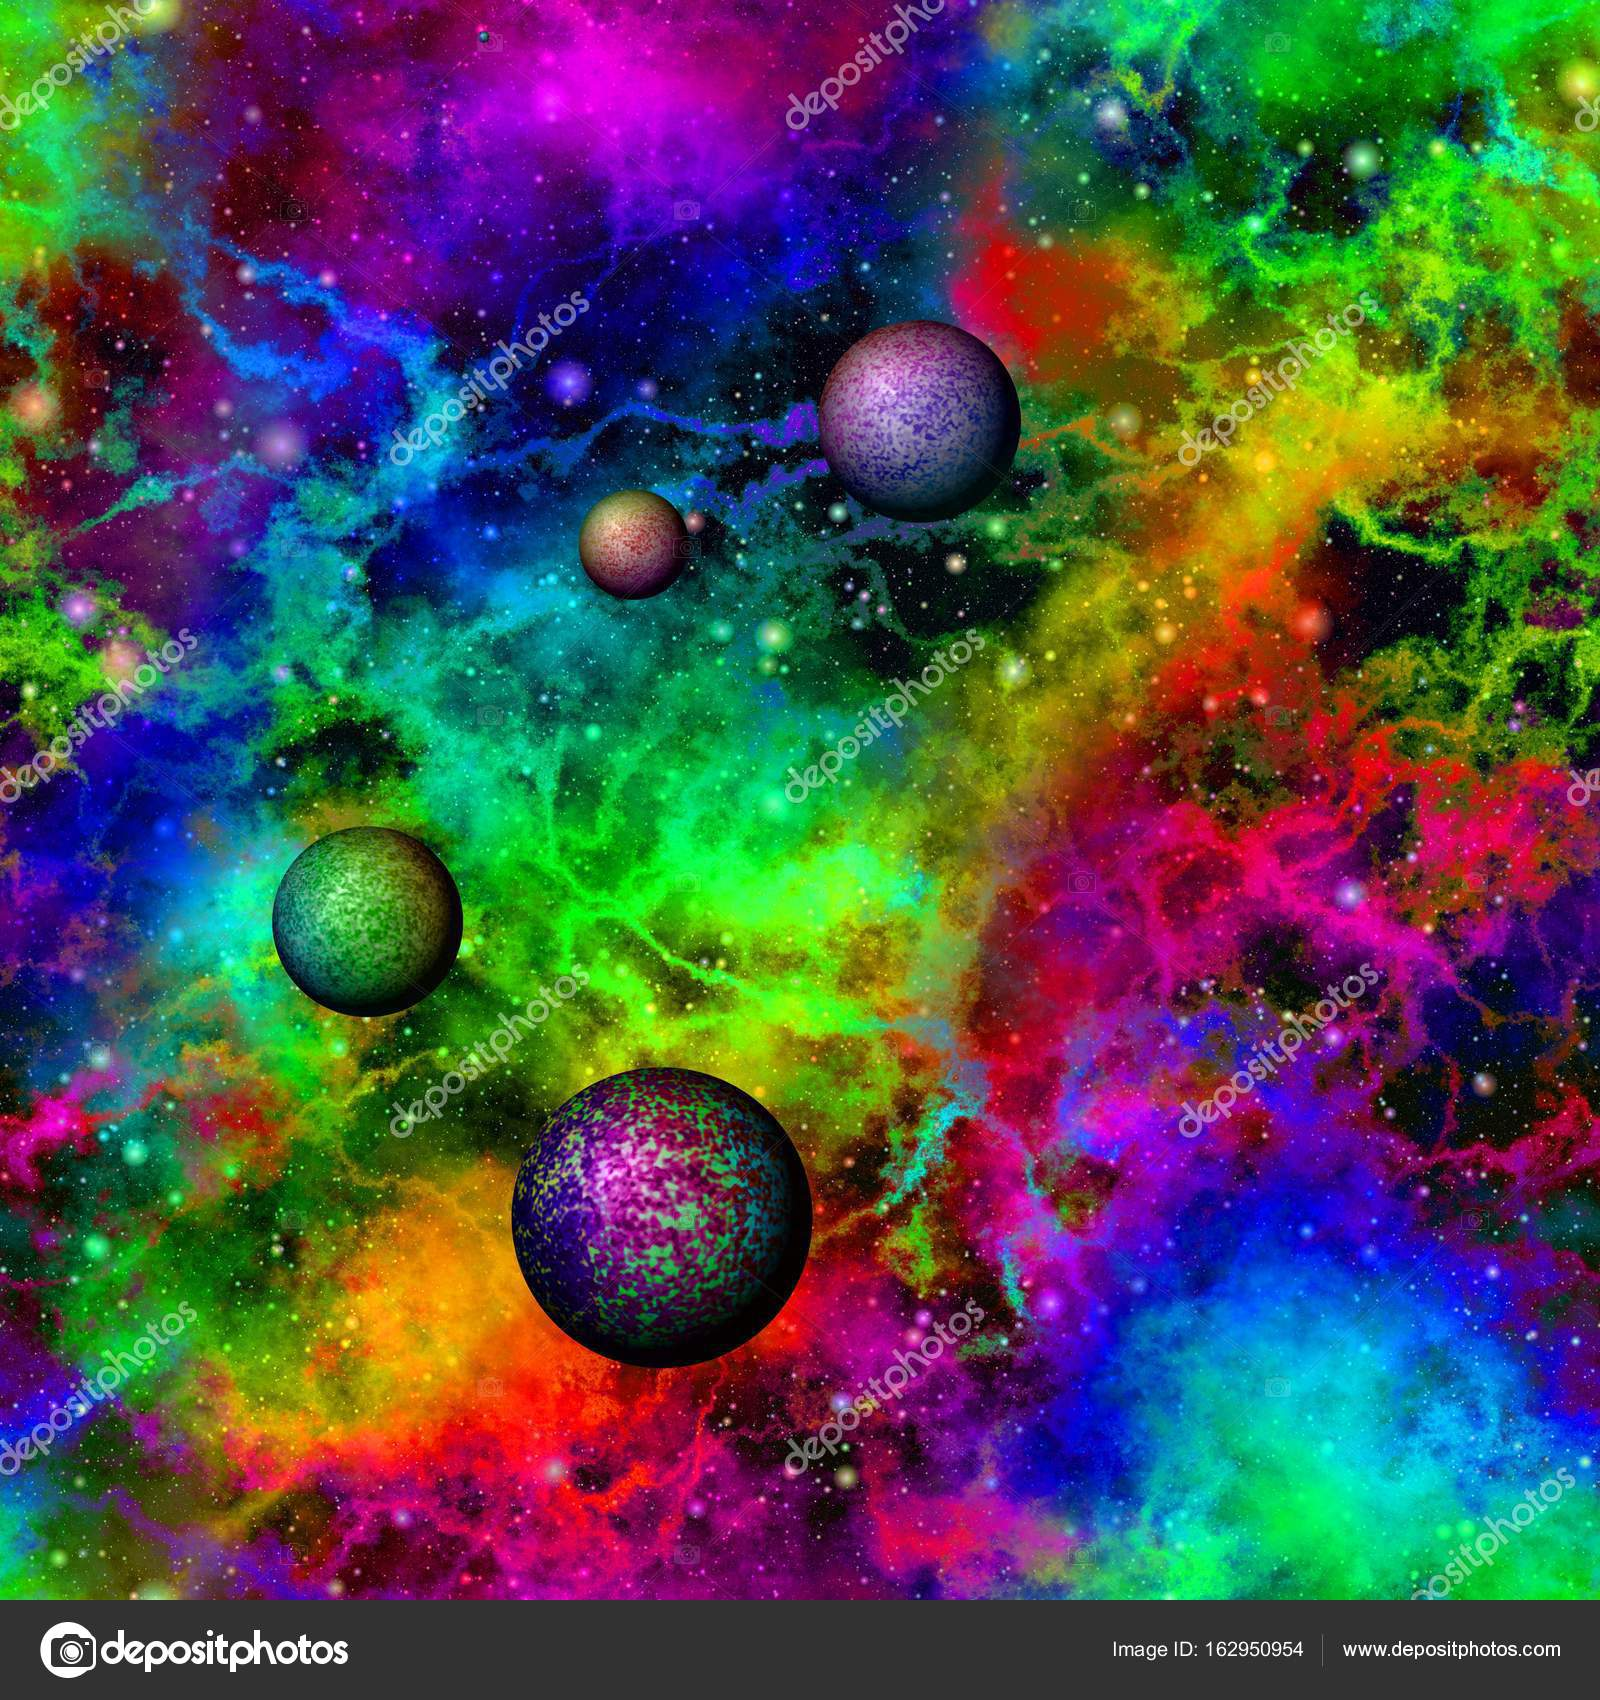 Picture: rainbow from space | Abstract colorful universe